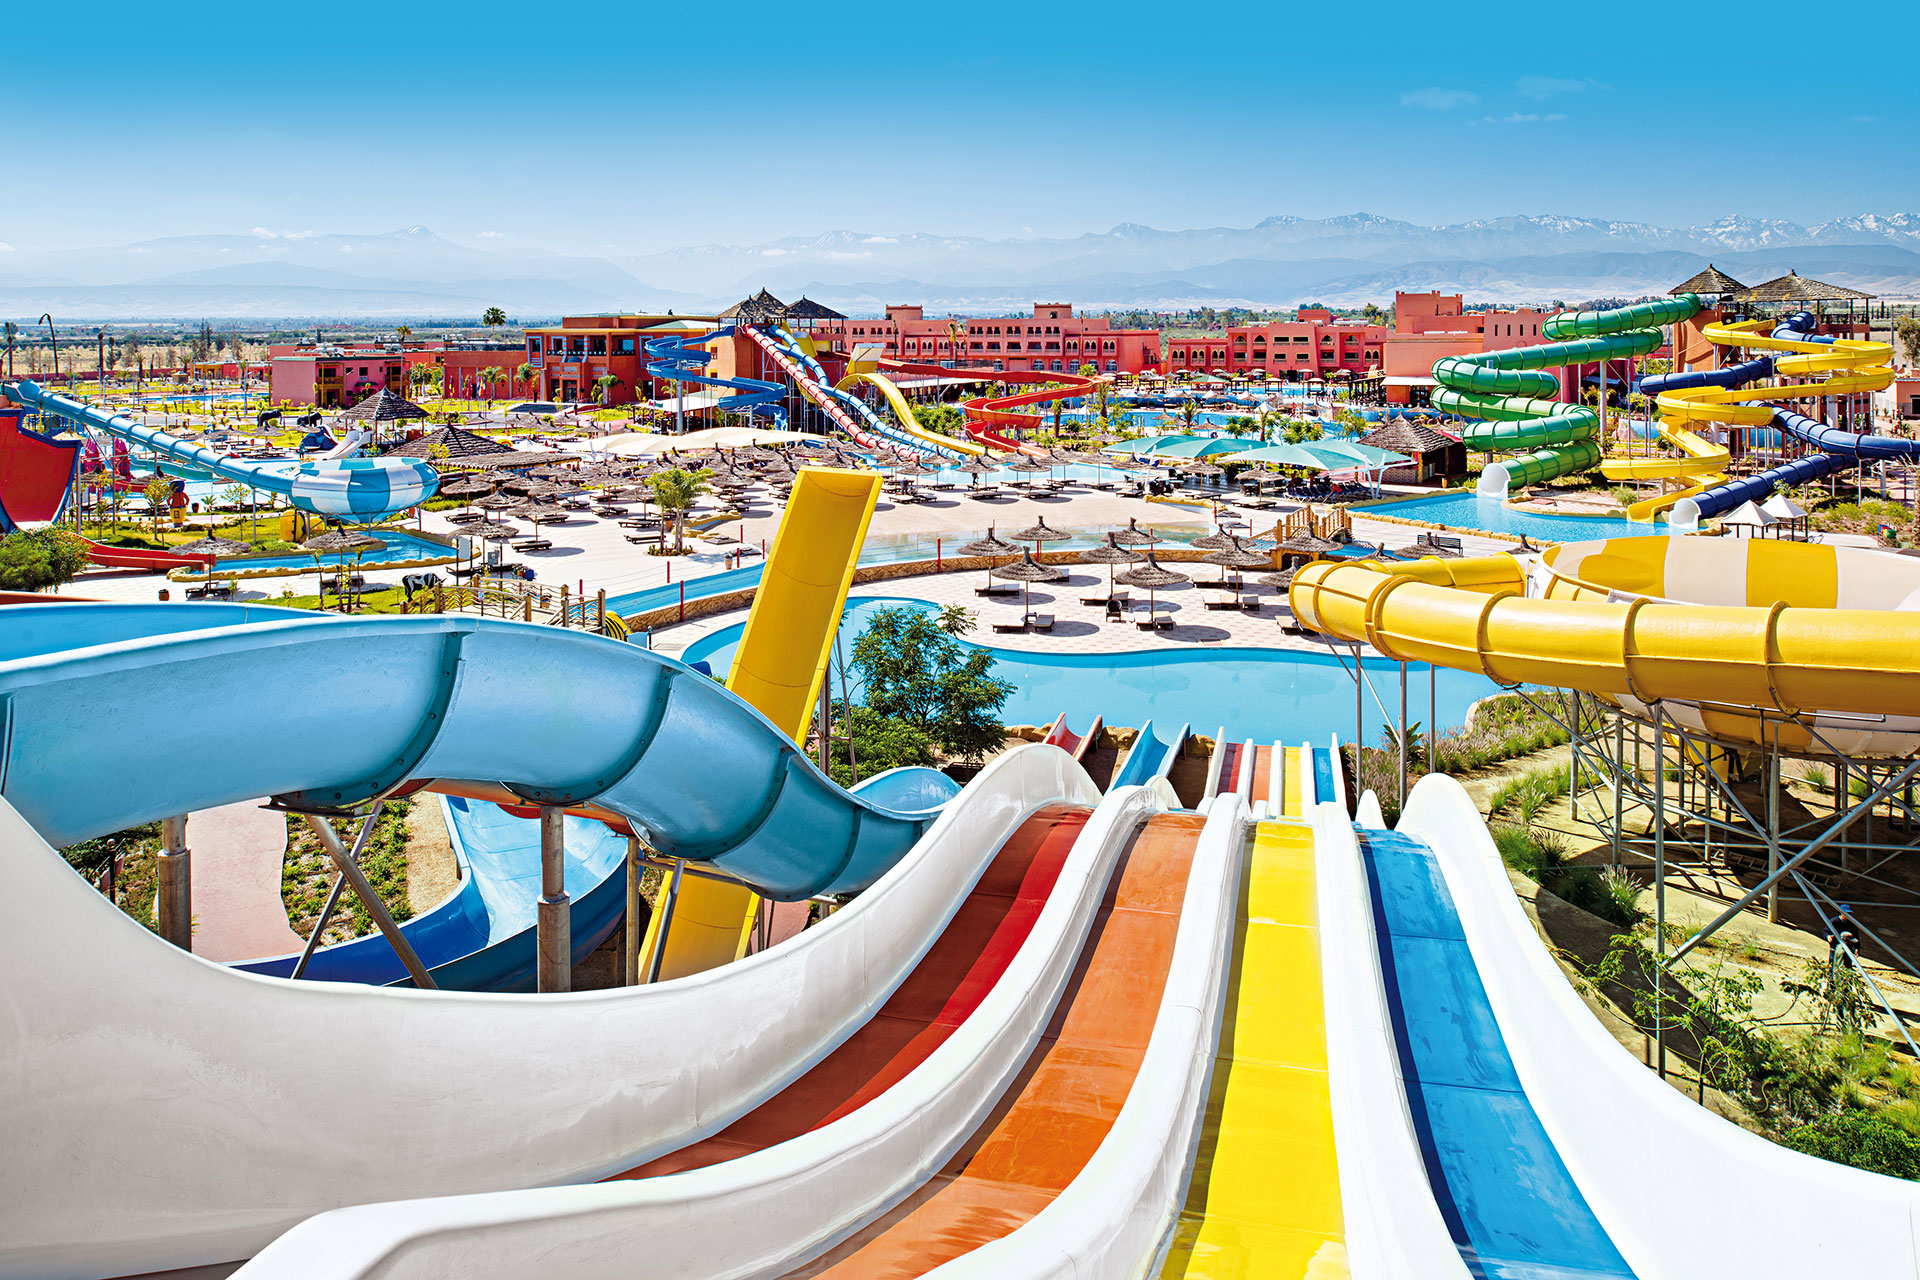 Water Park at Labranda Aqua Fun Club in Marrakesh; Courtesy of Labranda Aqua Fun Club